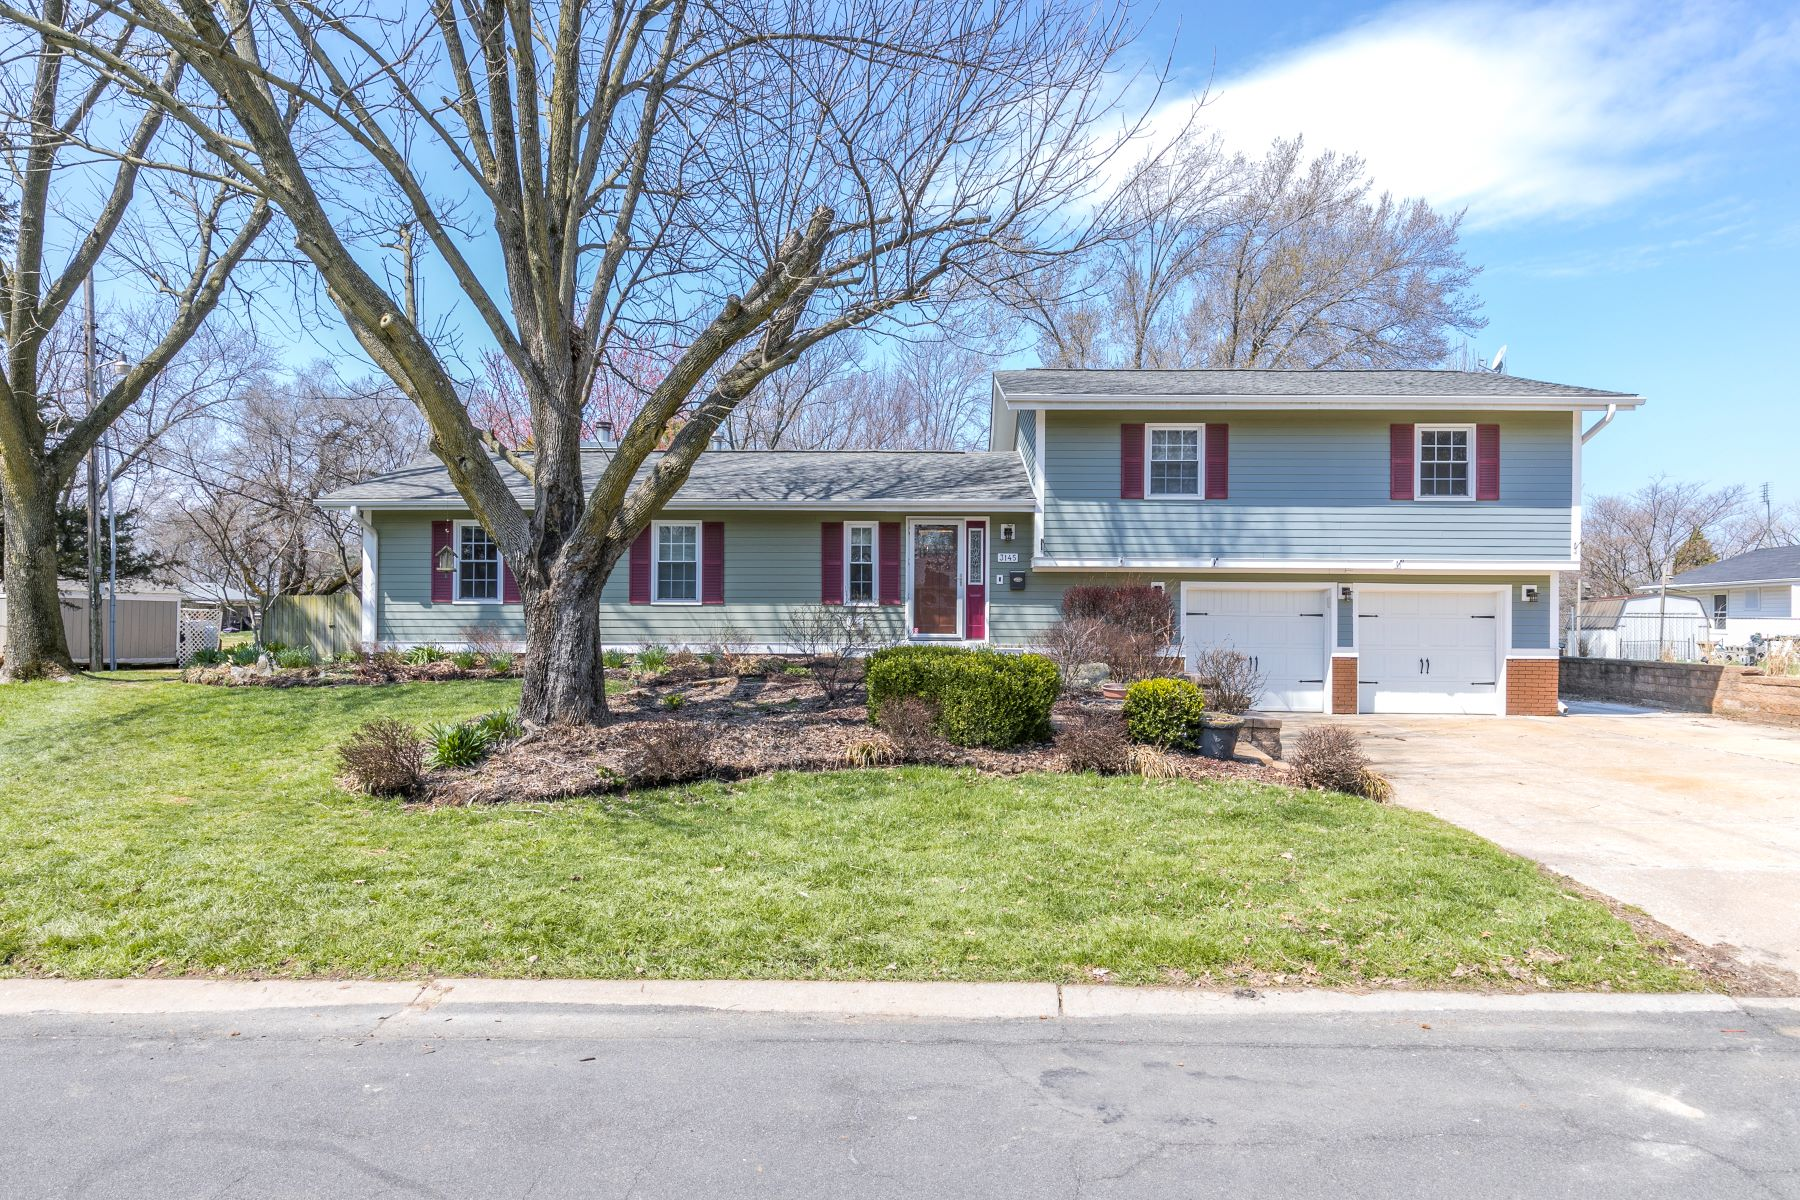 Single Family Home for Sale at 3145 Lansing Drive, Saint Ann, MO 63074 3145 Lansing Drive St. Ann, Missouri 63074 United States